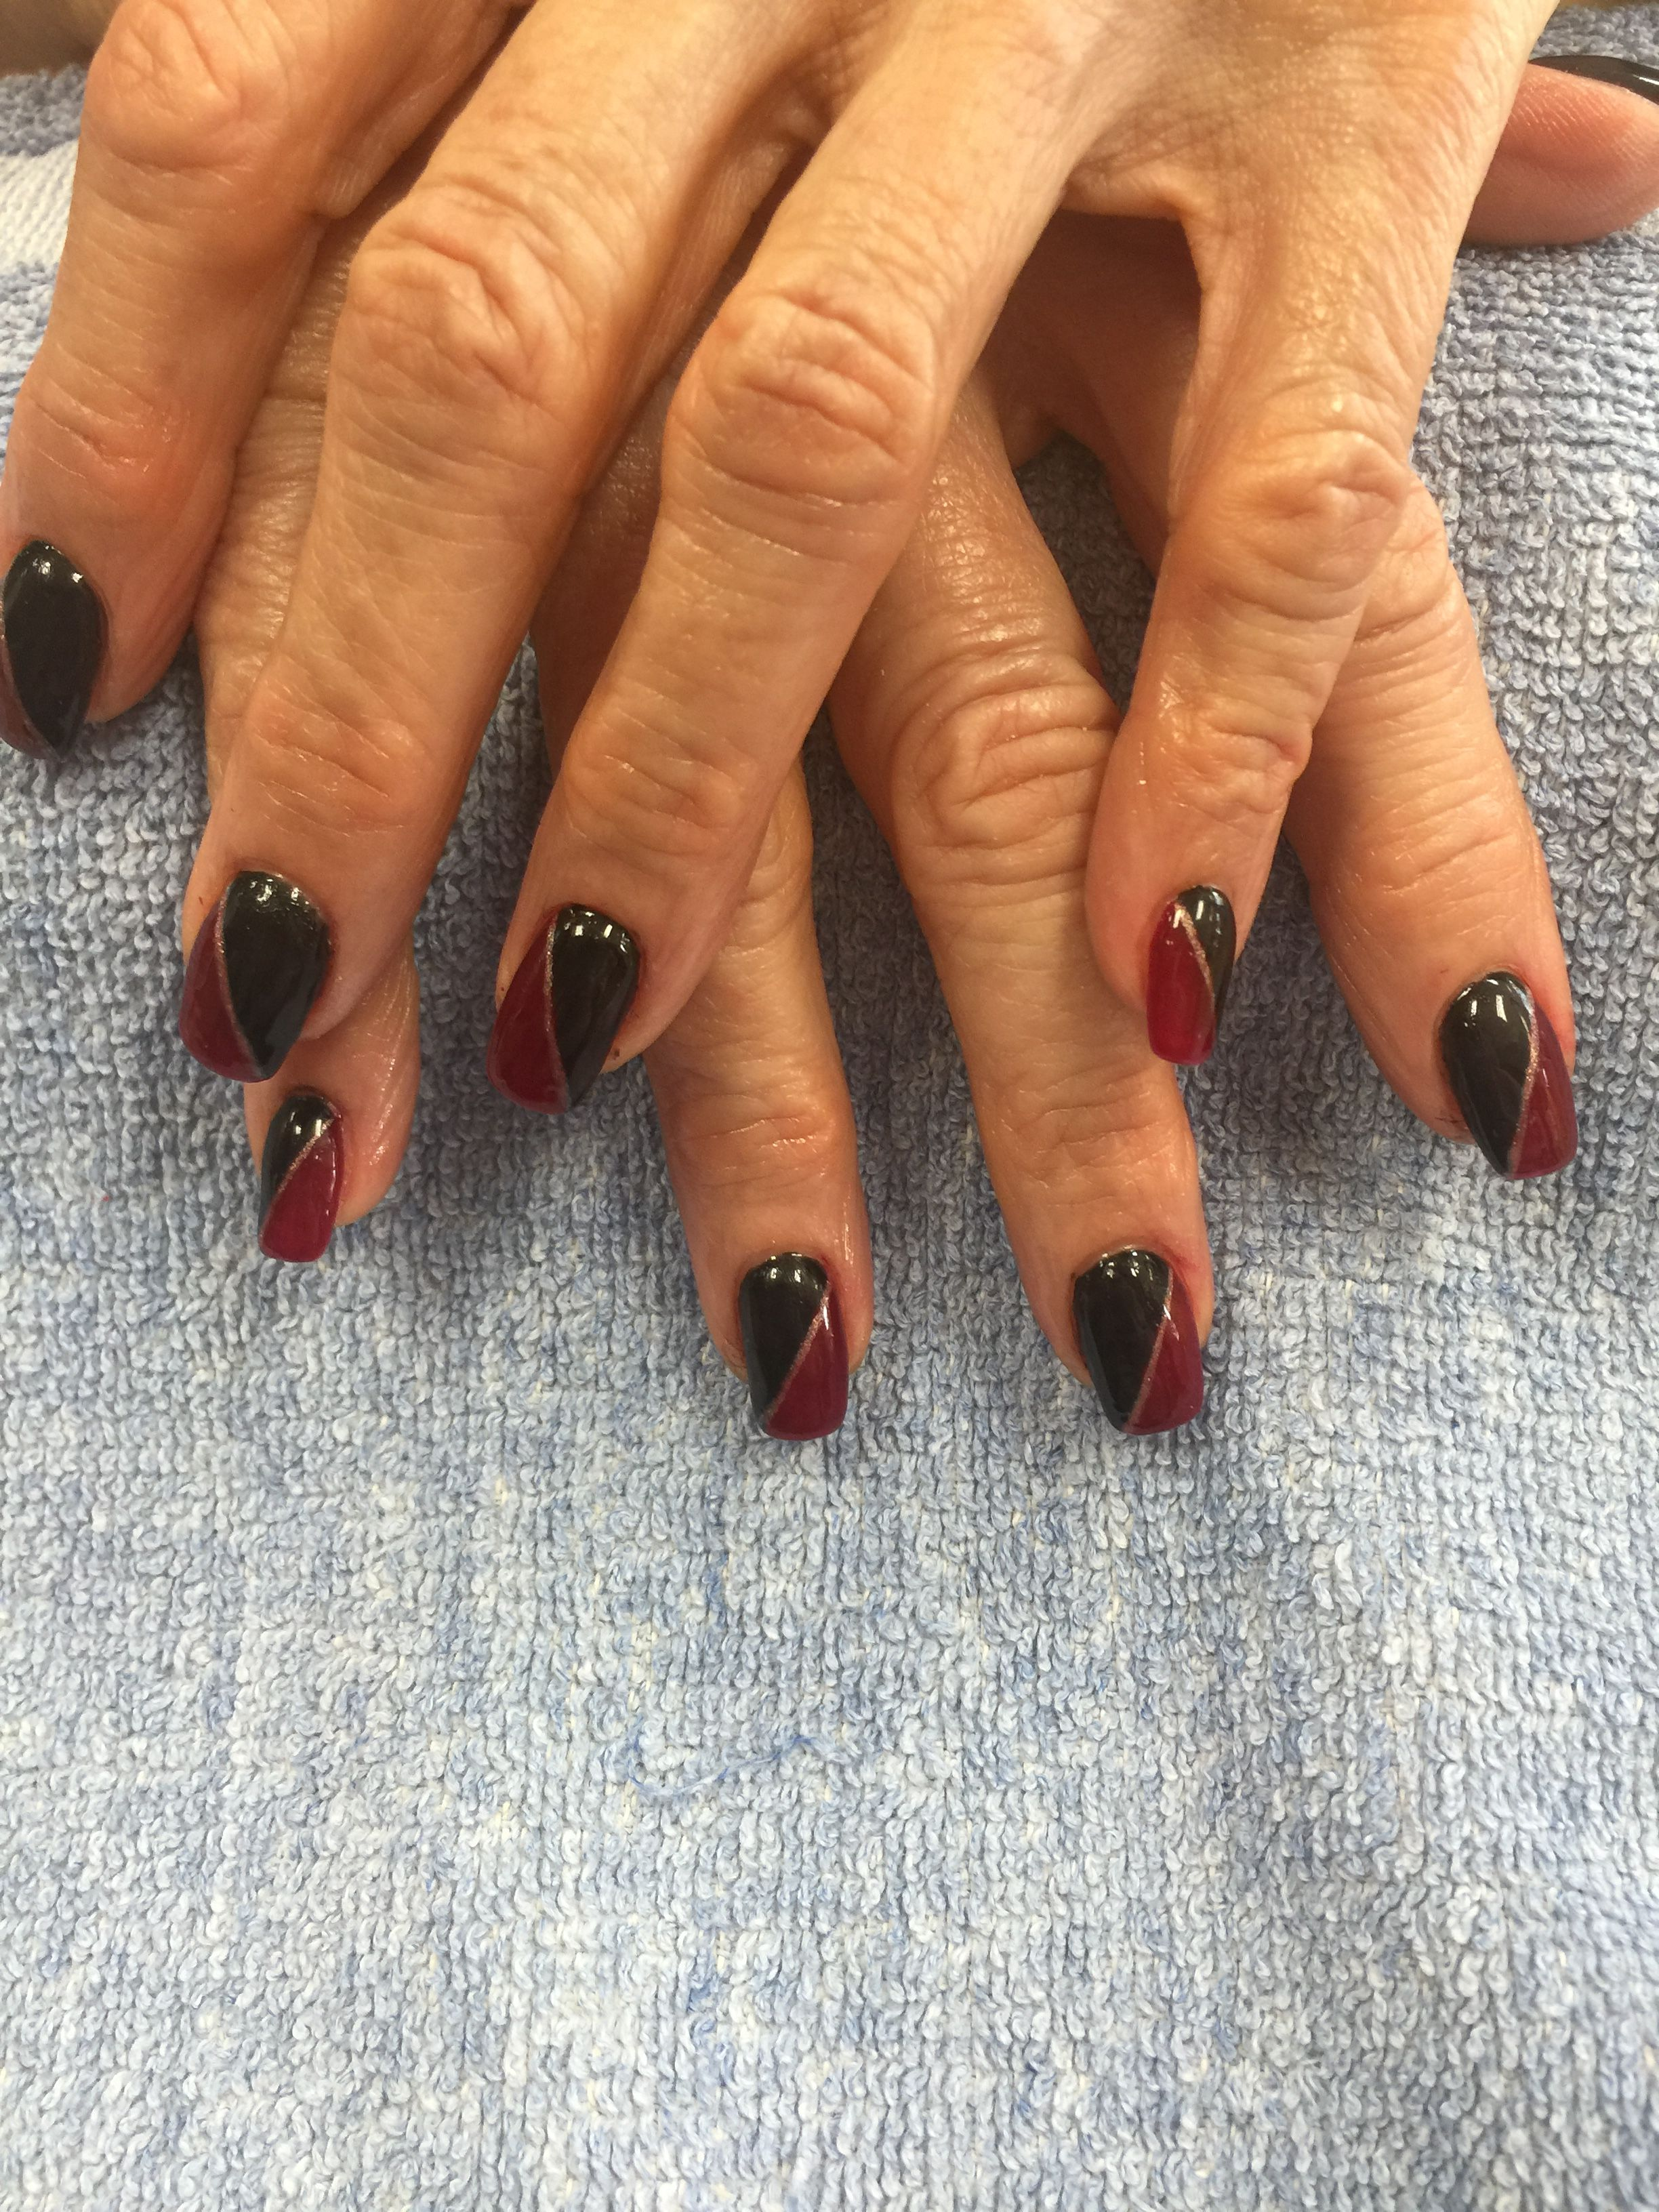 Black and dark red nails design by Kayla Le | Nails designs ...